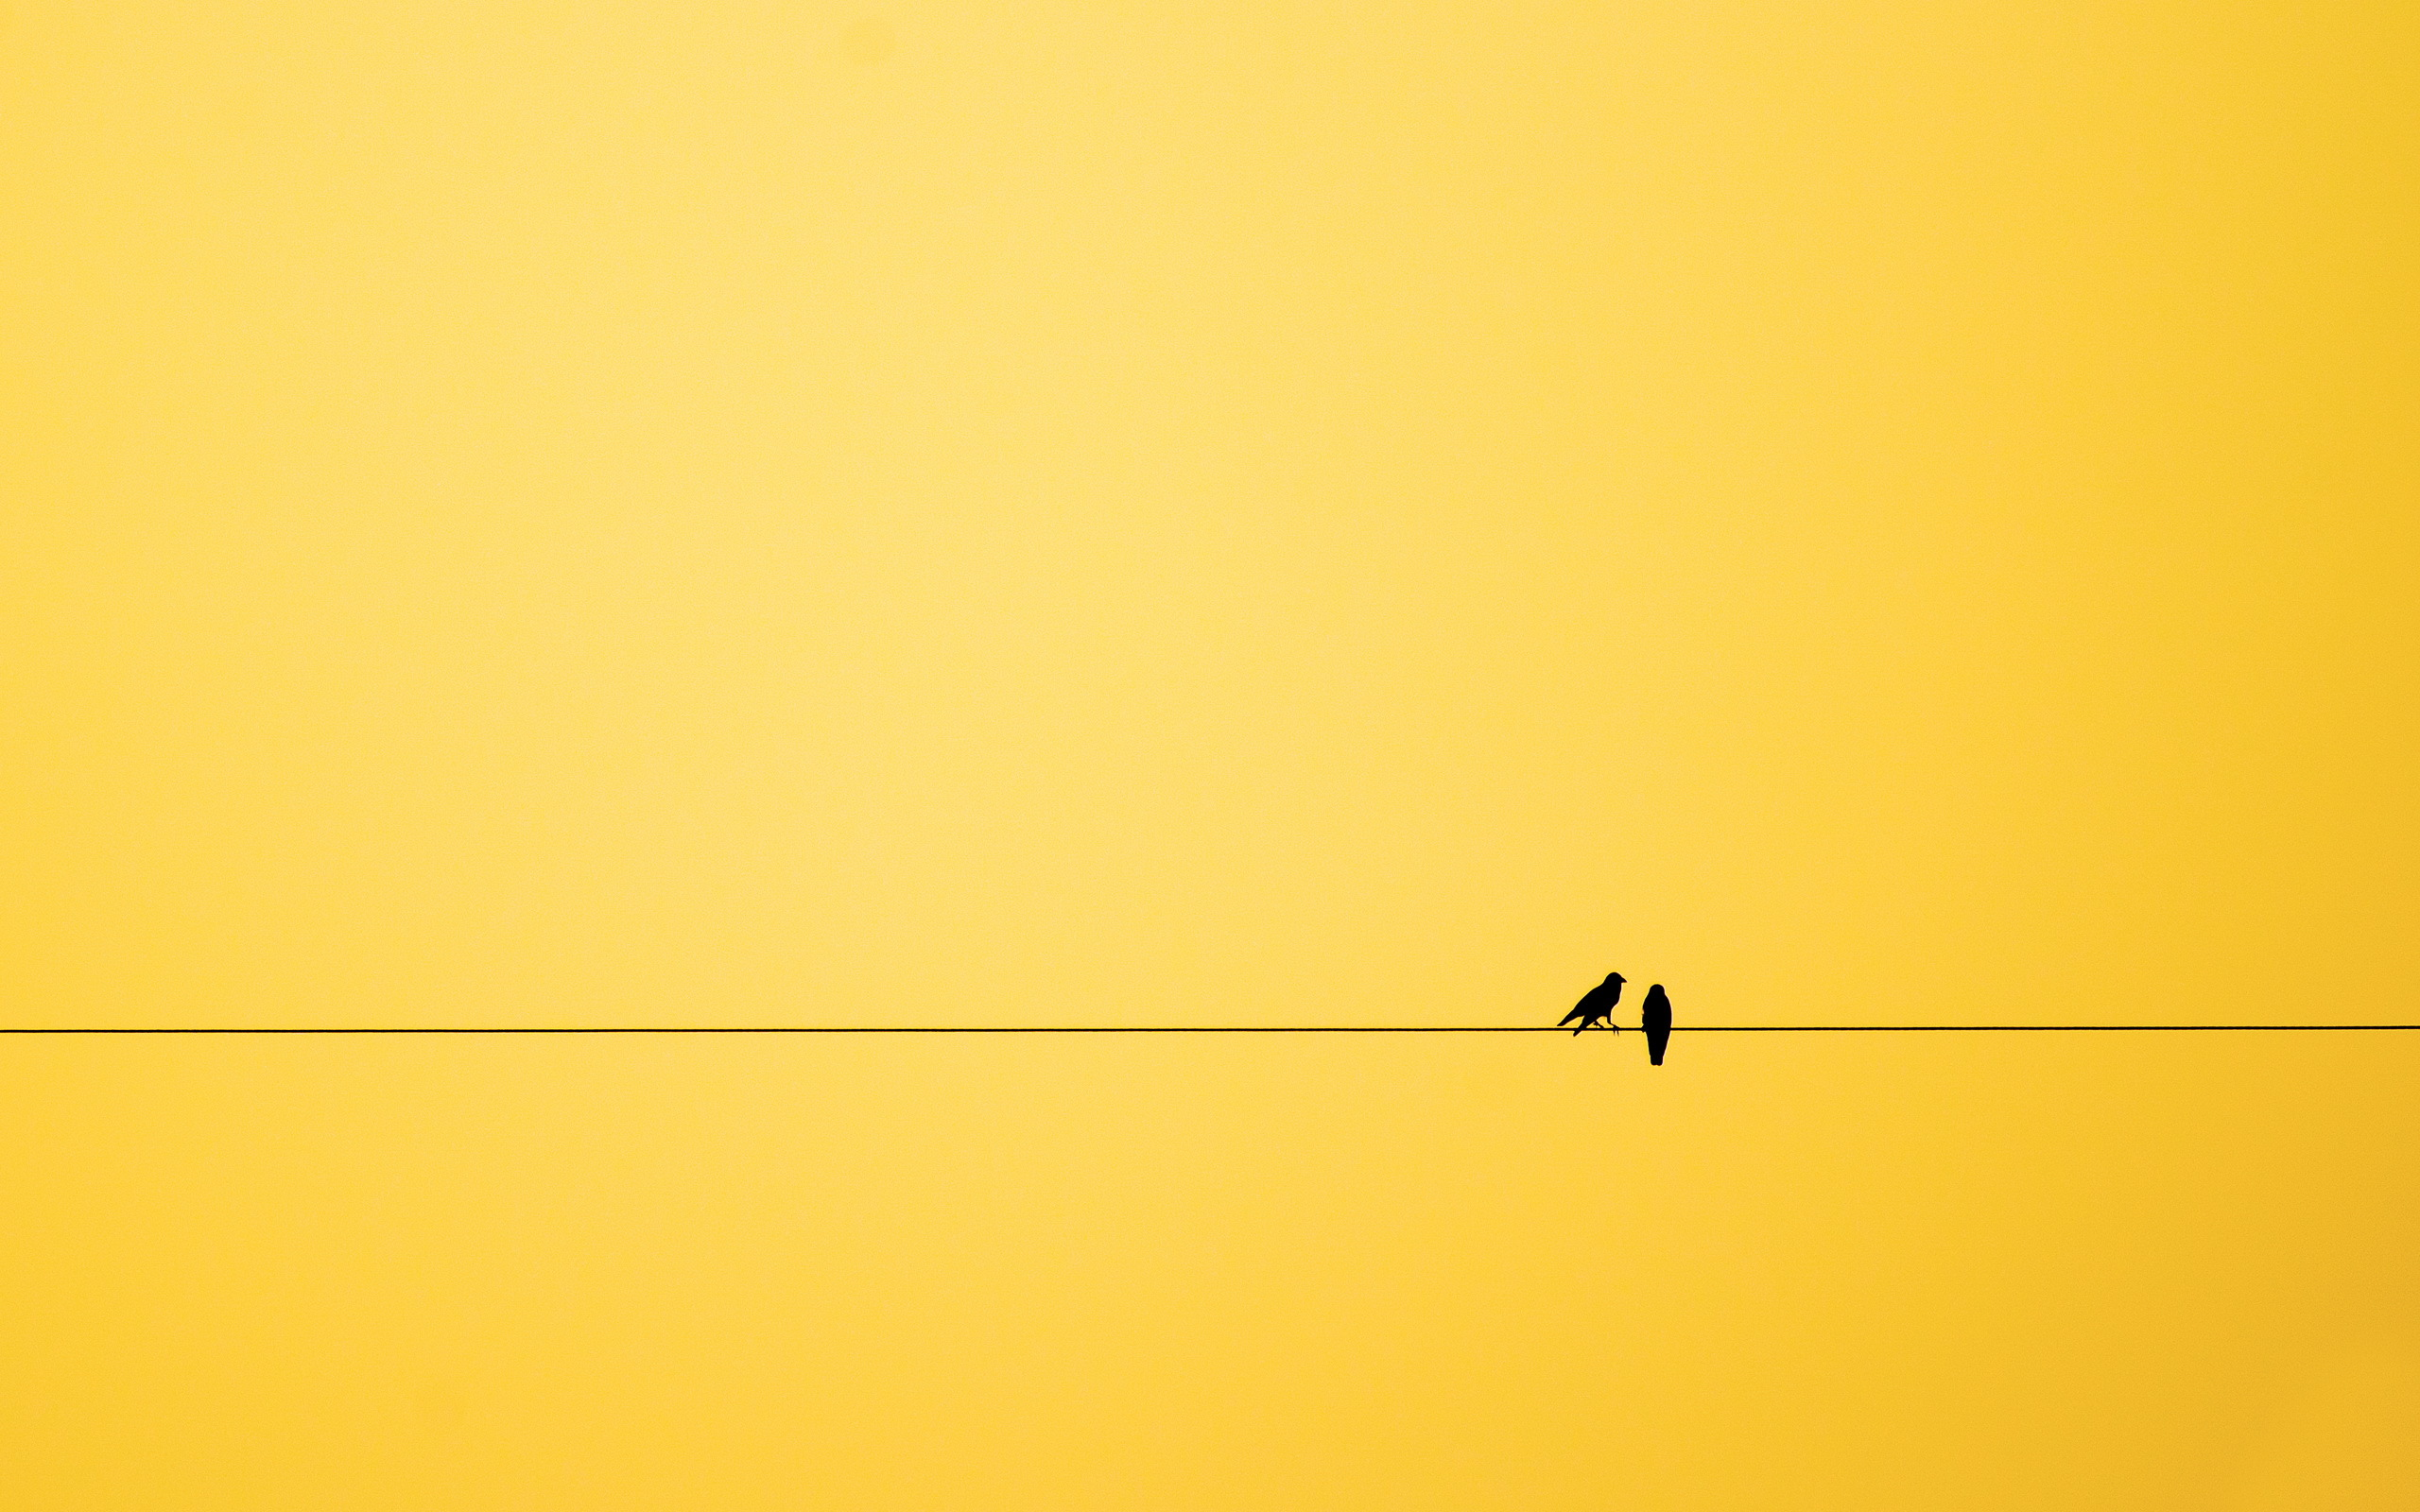 Minimalism HD wallpapers, Desktop wallpaper - most viewed